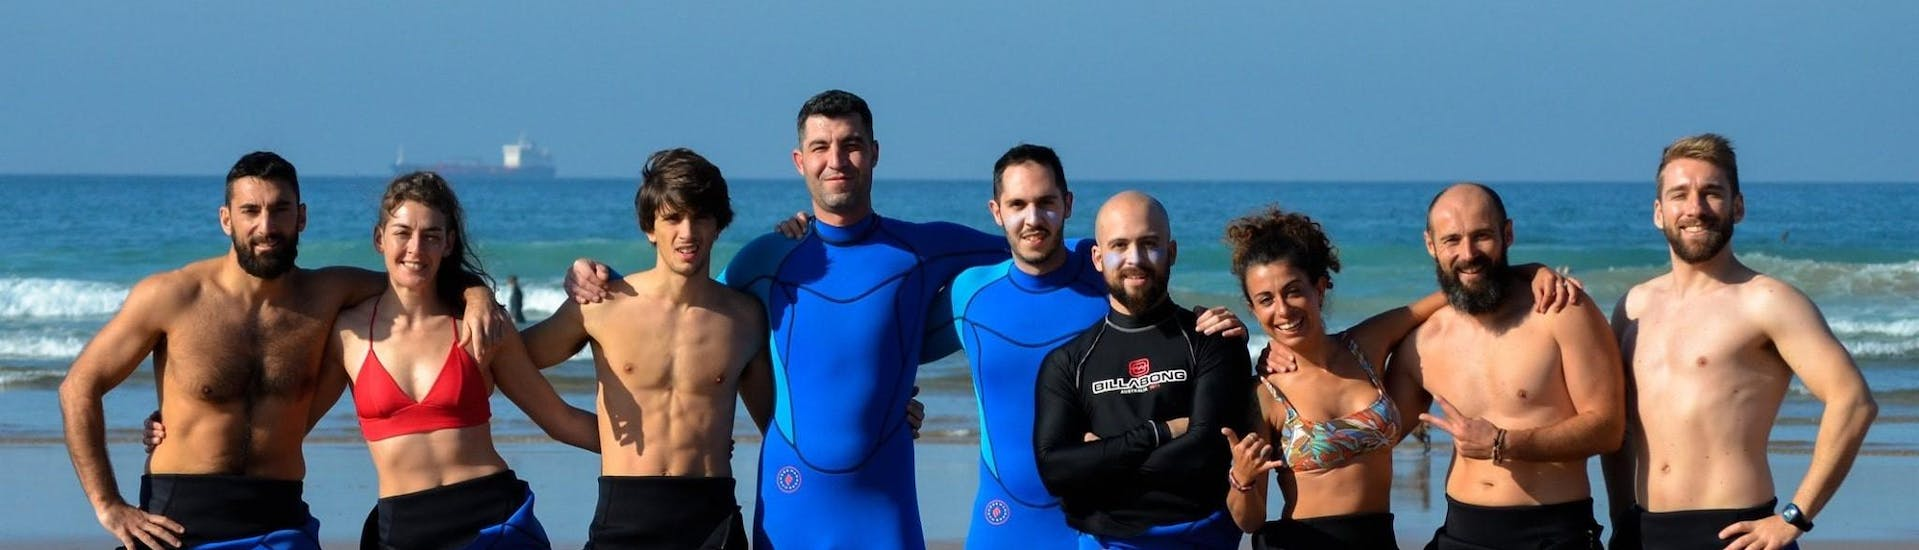 A group of surfers smiles together with the surf instructors of Latas Surf into the camera during their Surfing Lessons incl. video analysis - All Levels & Ages.